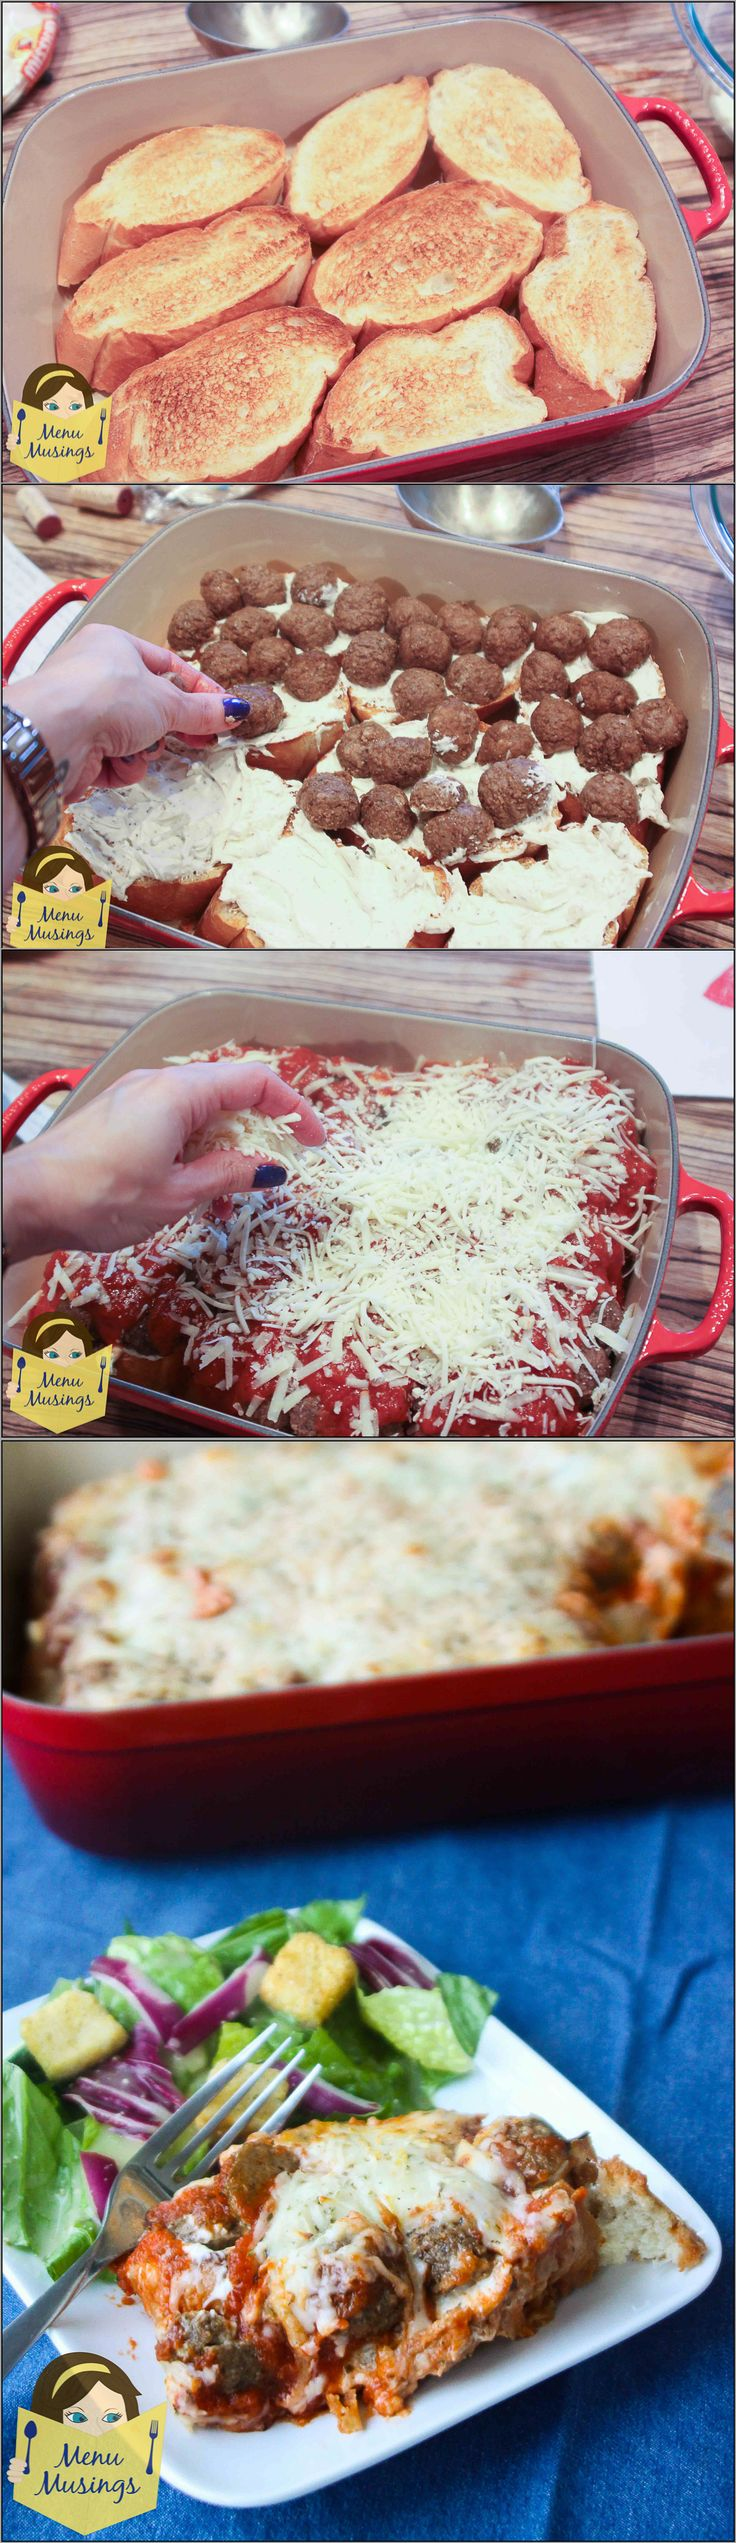 Easy Meatball Sub Casserole - So quick and easy to make on a busy evening! Step-by-step photos to this family friendly recipe!